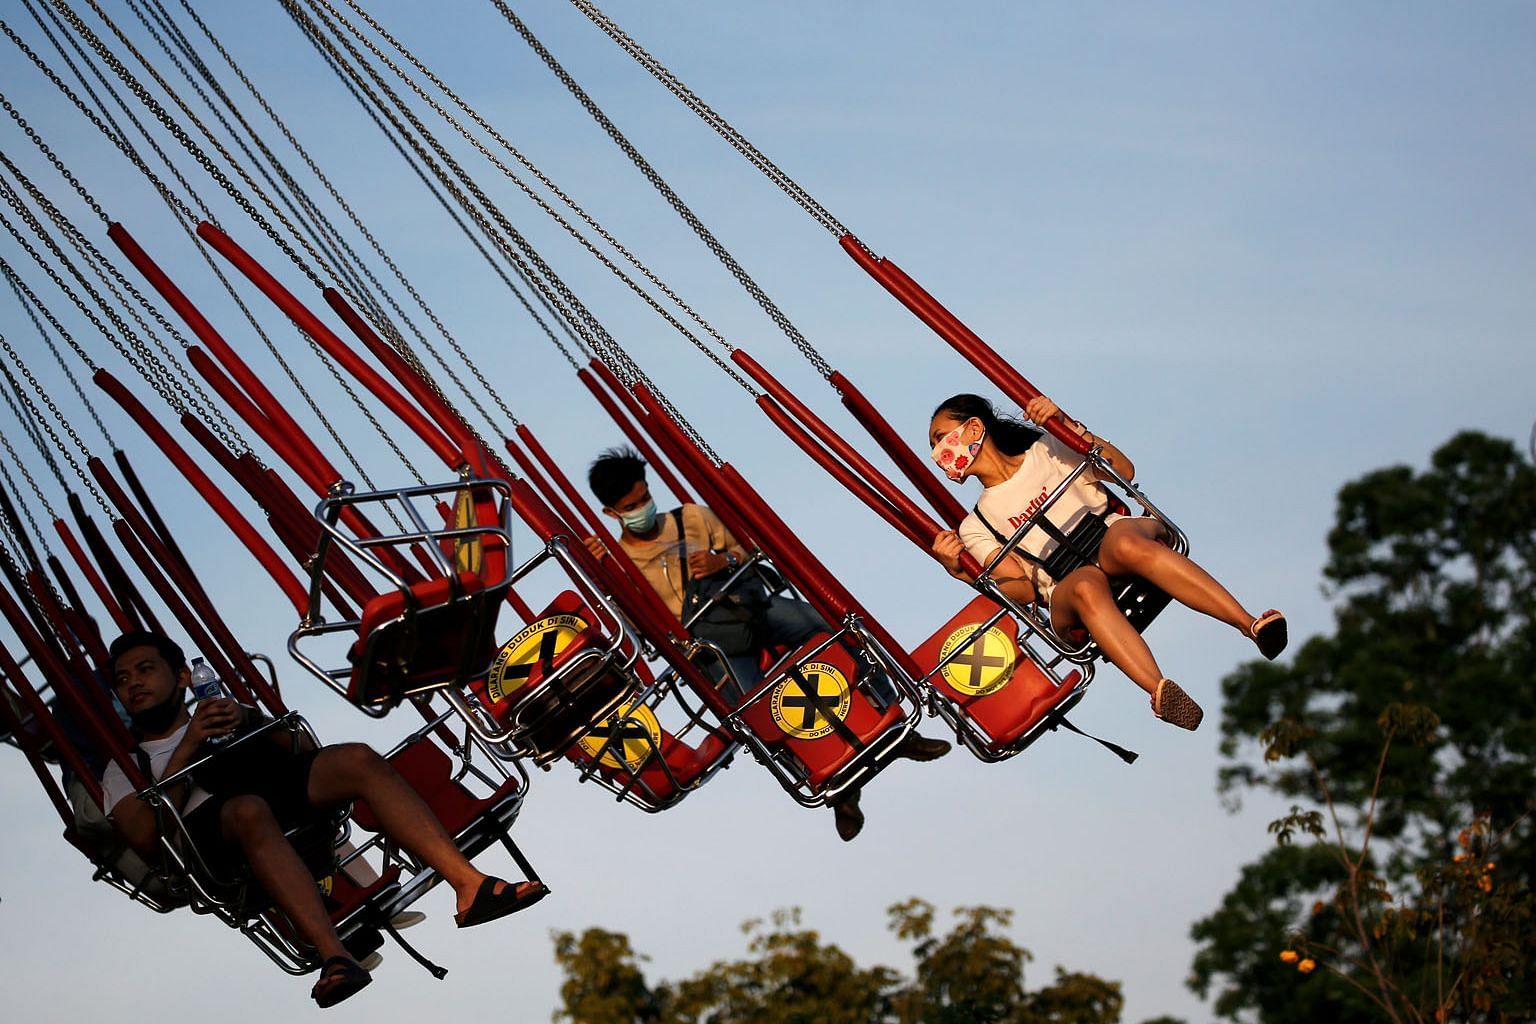 People at Dunia Fantasi amusement park in Jakarta on Sunday. Cities and provinces across Indonesia have gradually eased restrictive measures imposed as part of partial lockdowns. PHOTO: REUTERS